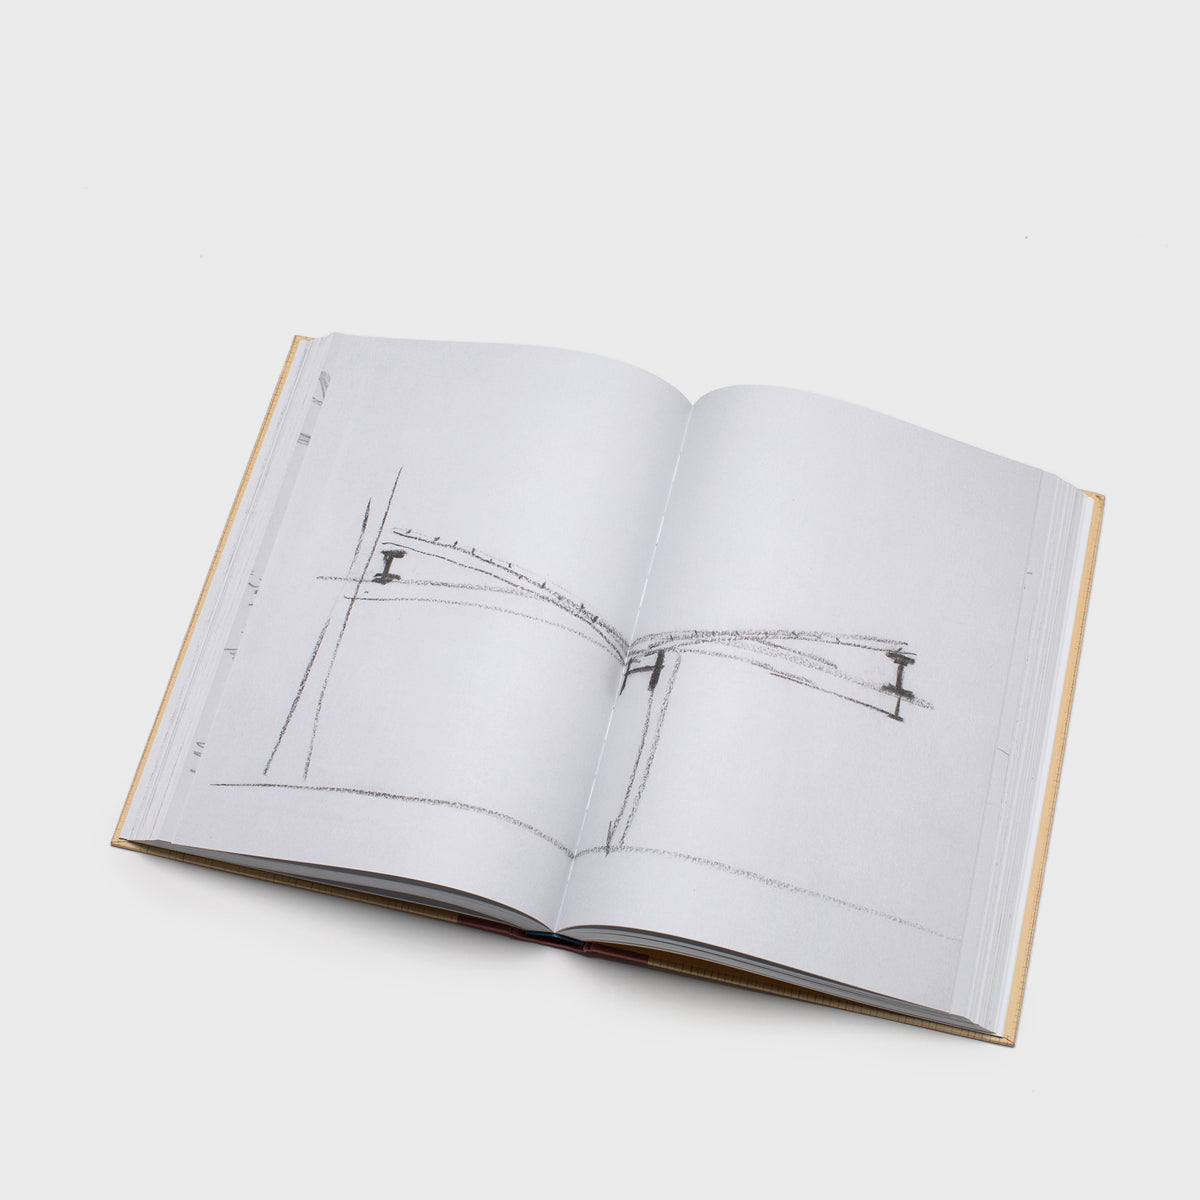 Load image into Gallery viewer, Herzog & de Meuron: Zeichnungen Drawings